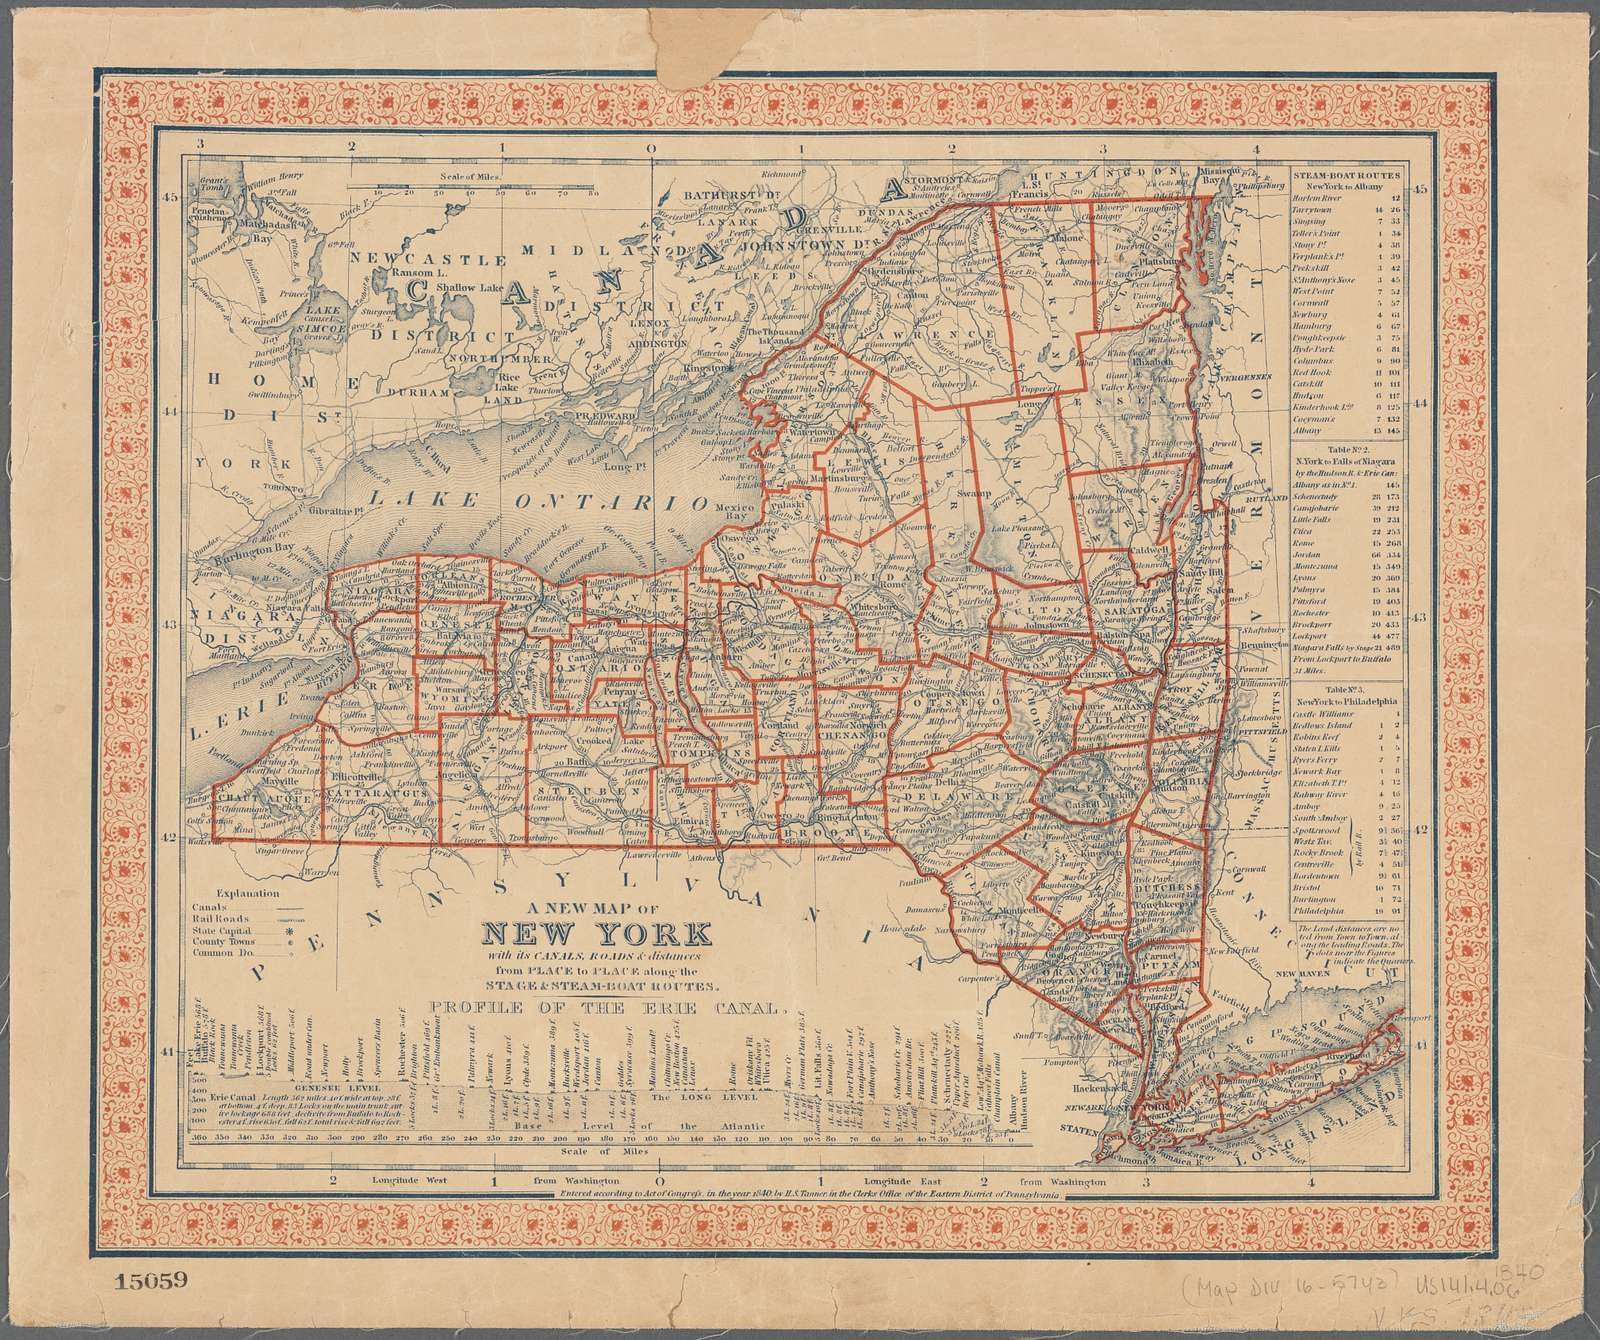 A new map of New York: with its canals, roads & distances from place to place along the stage & steam-boat routes